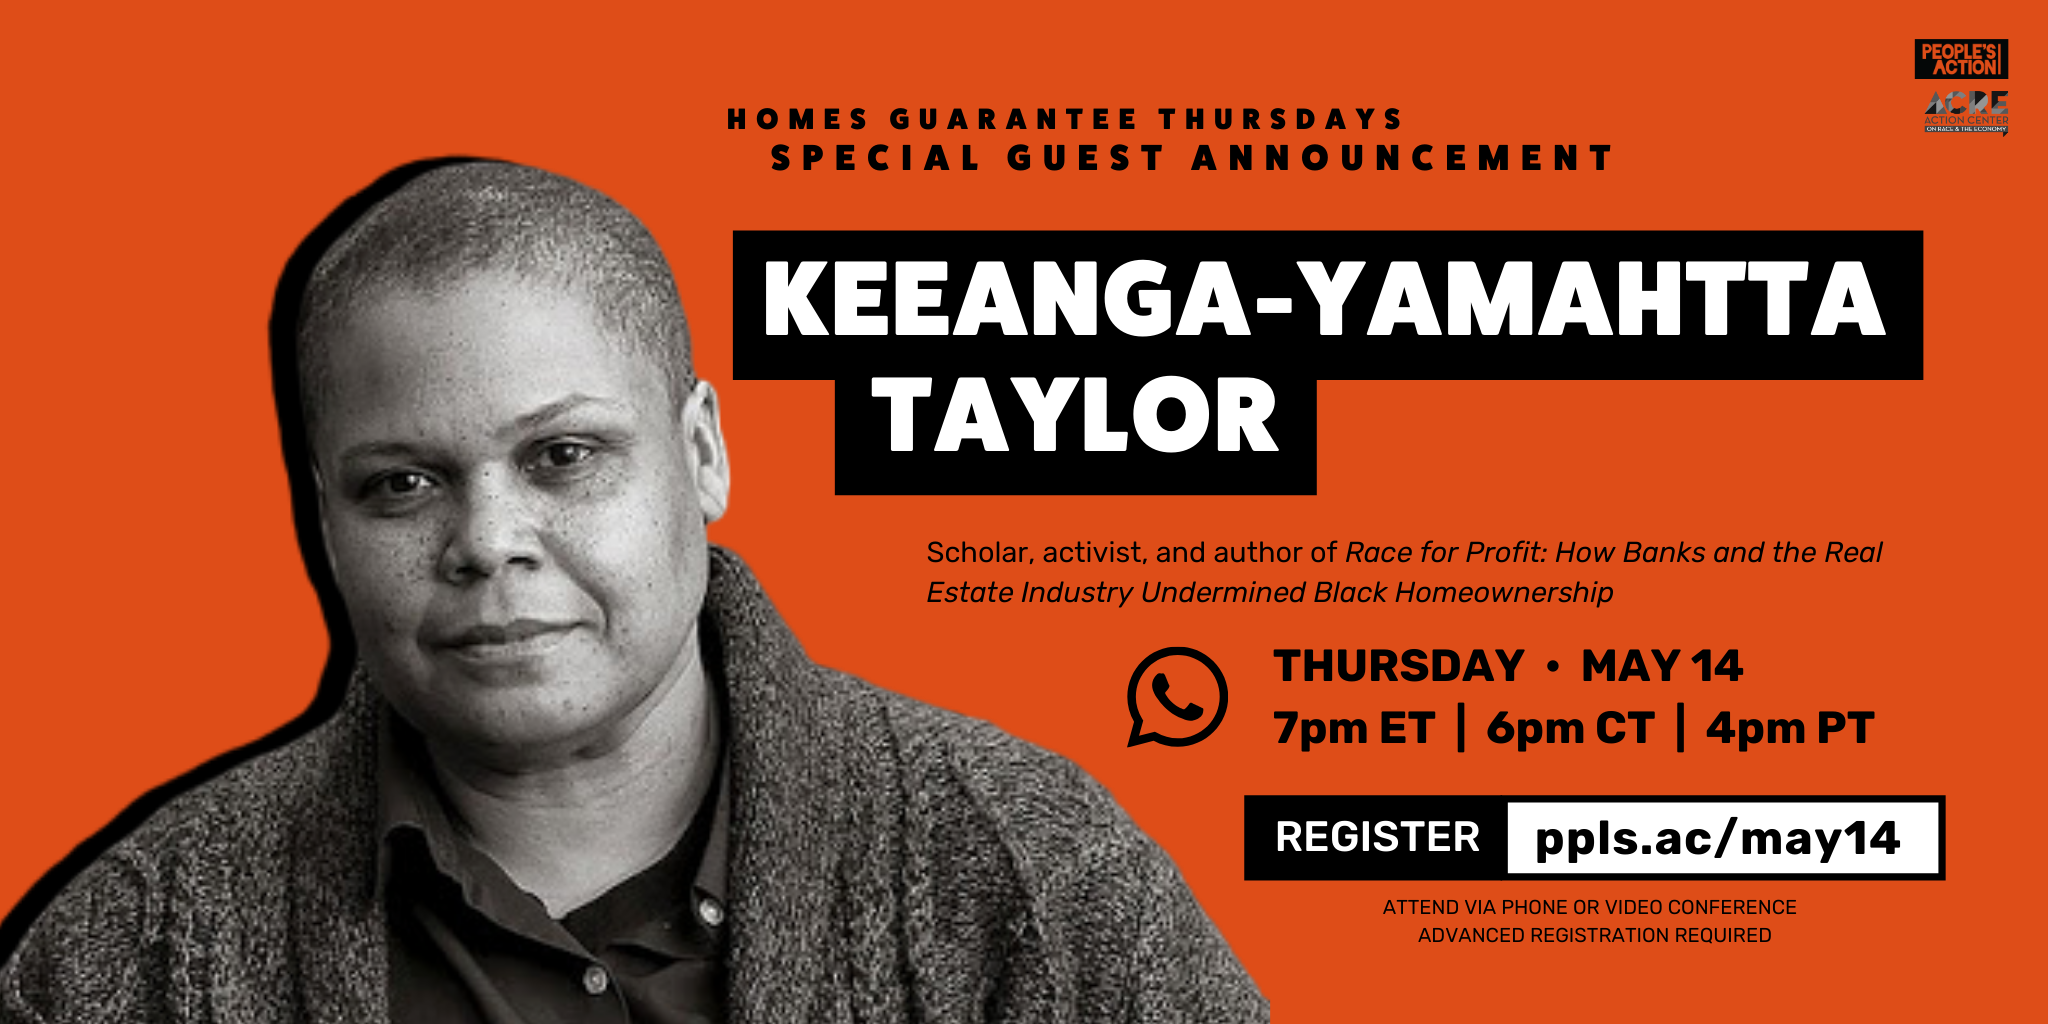 ARCHIVE: Q&A with Keeanga-Yamahtta Taylor – May 14